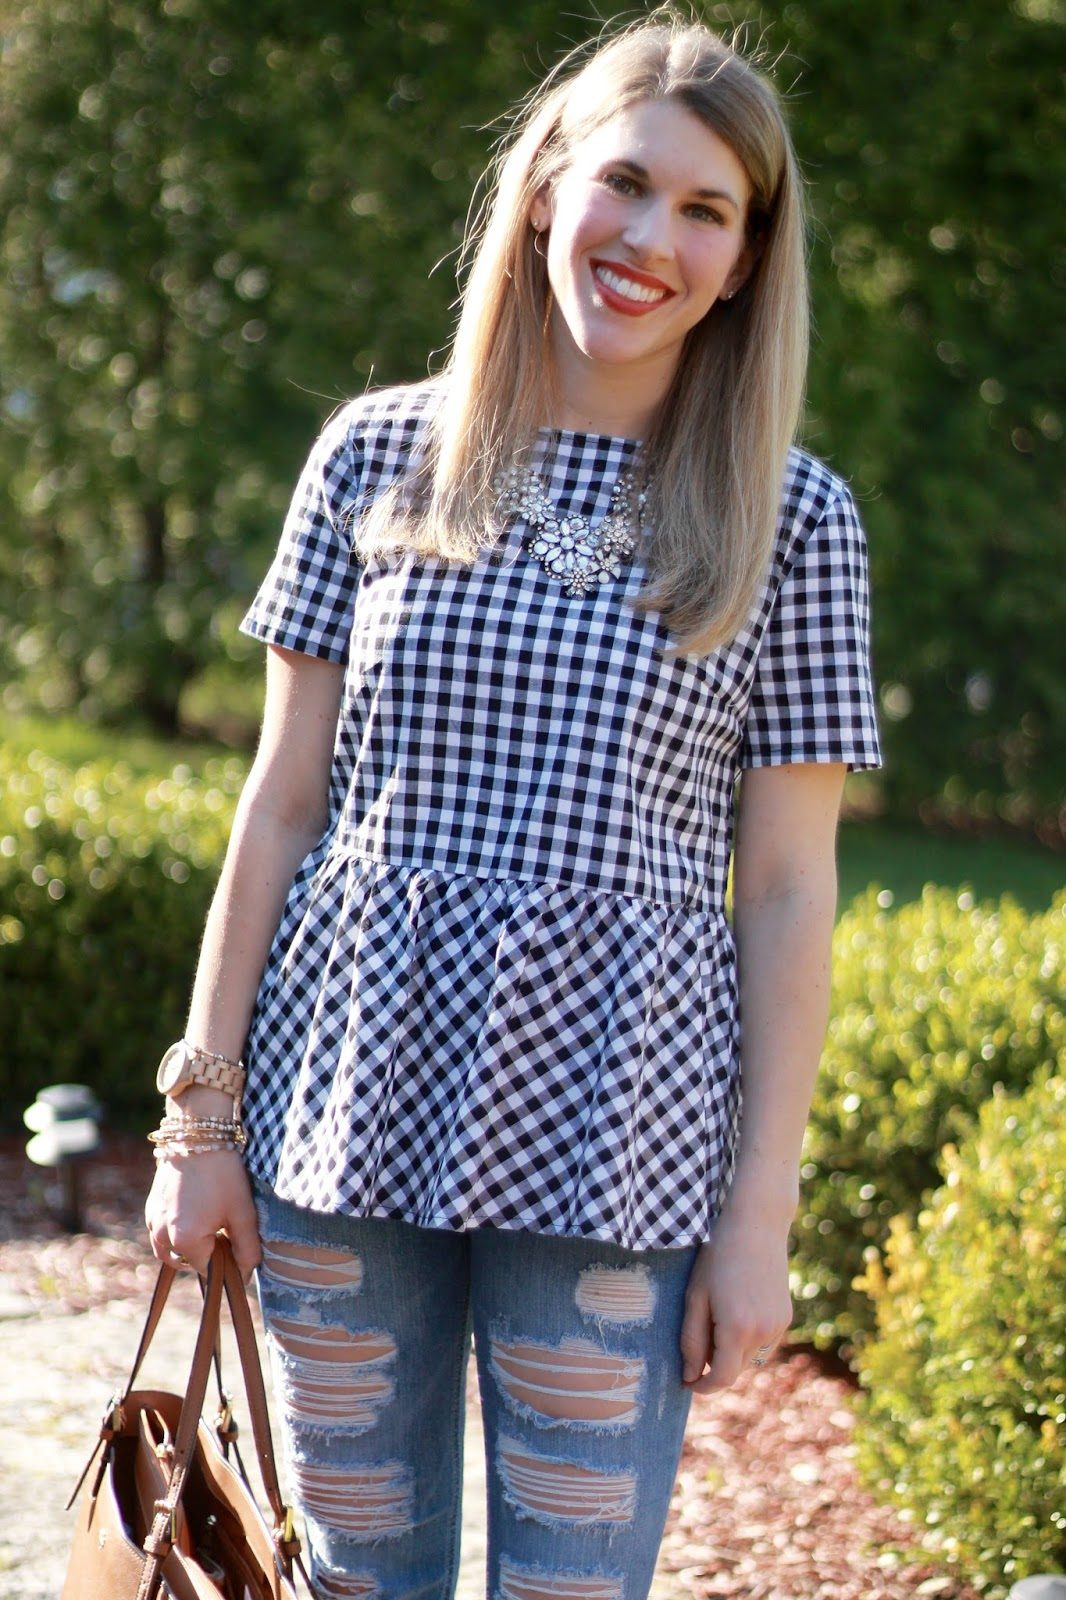 gingham bow back top, distressed jeans, Steve Madden wedge sandals